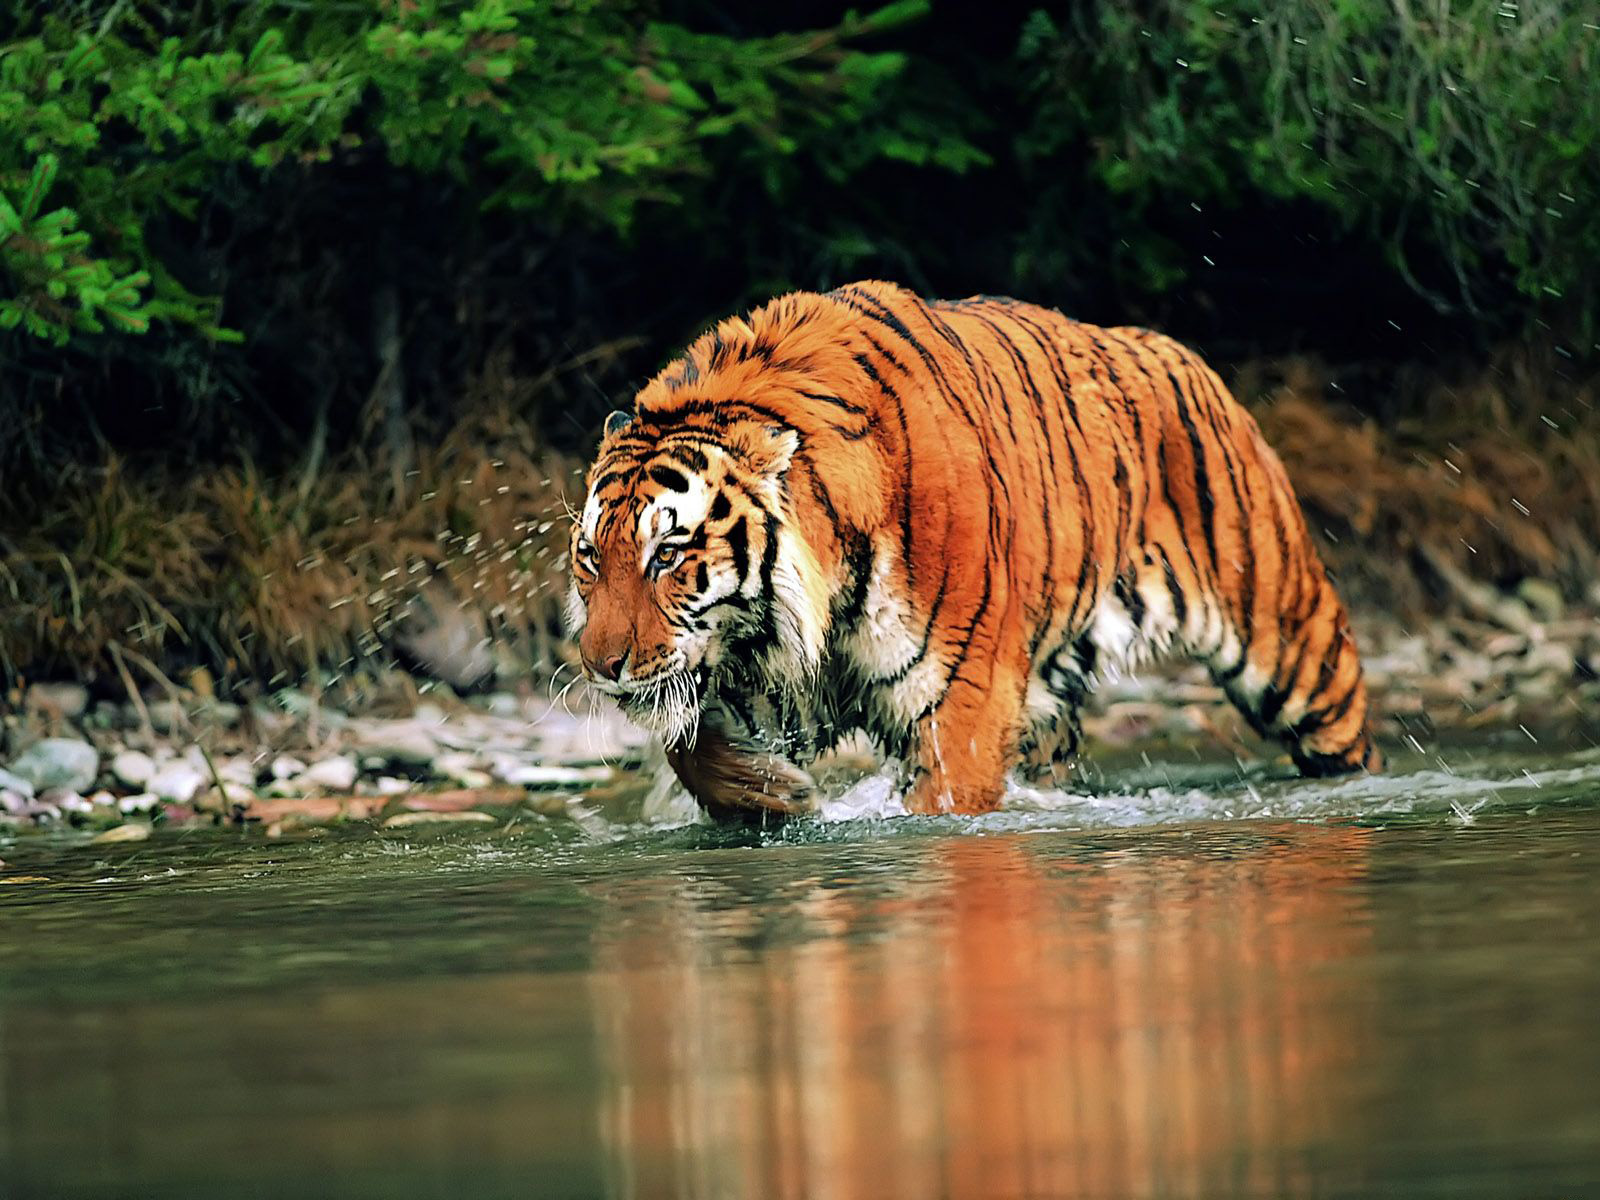 Total Hd Wallpapers Tiger Hd Wallpapers Hd